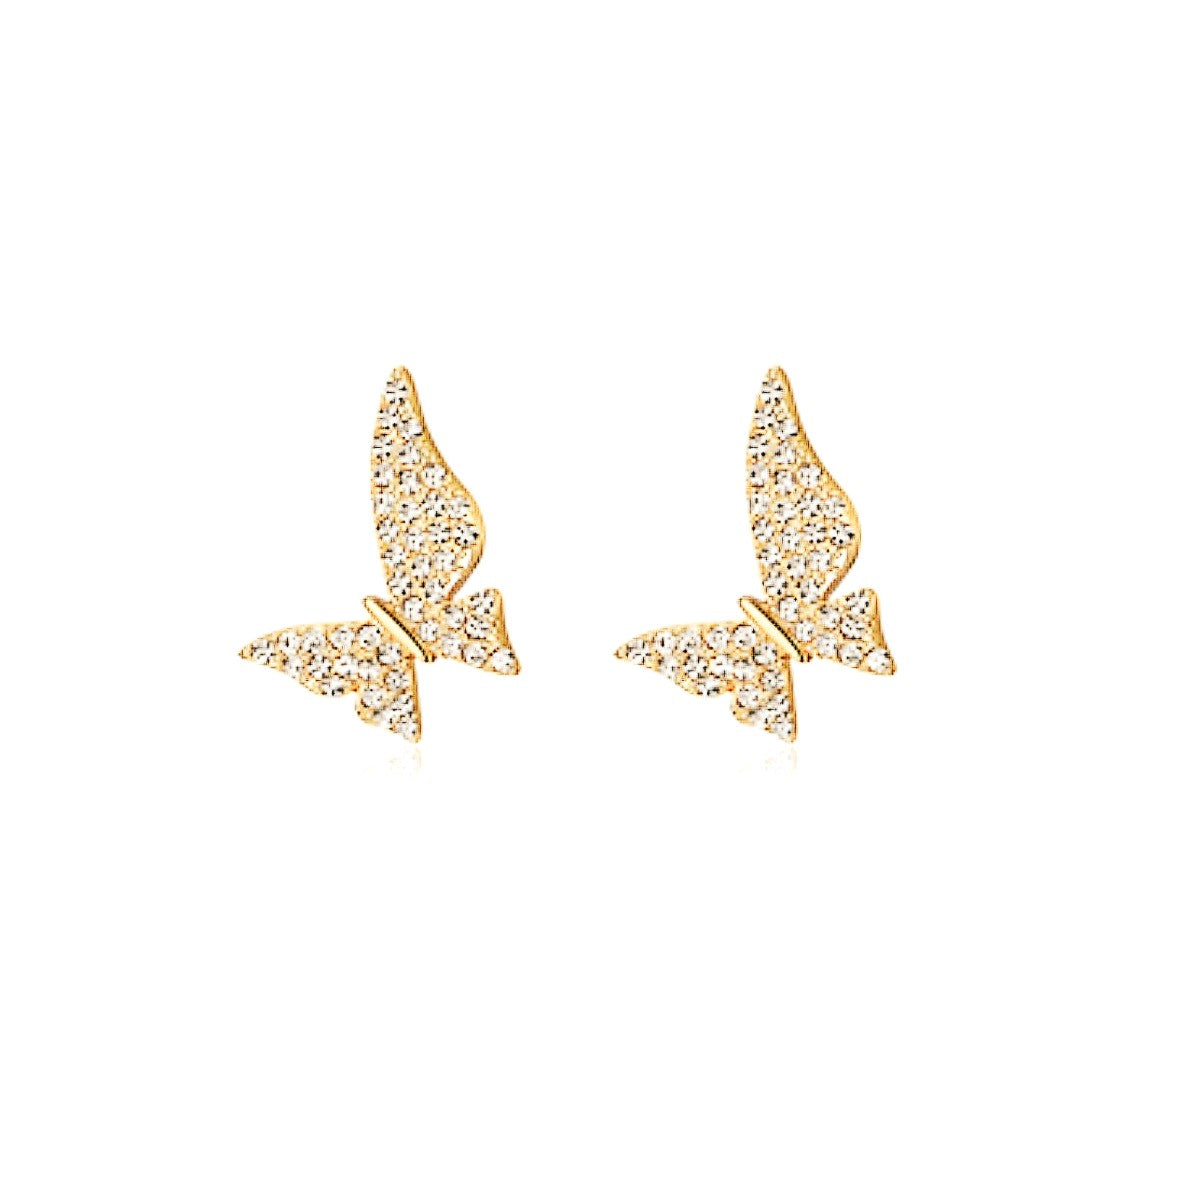 golden crystal butterfly earrings displayed on white background